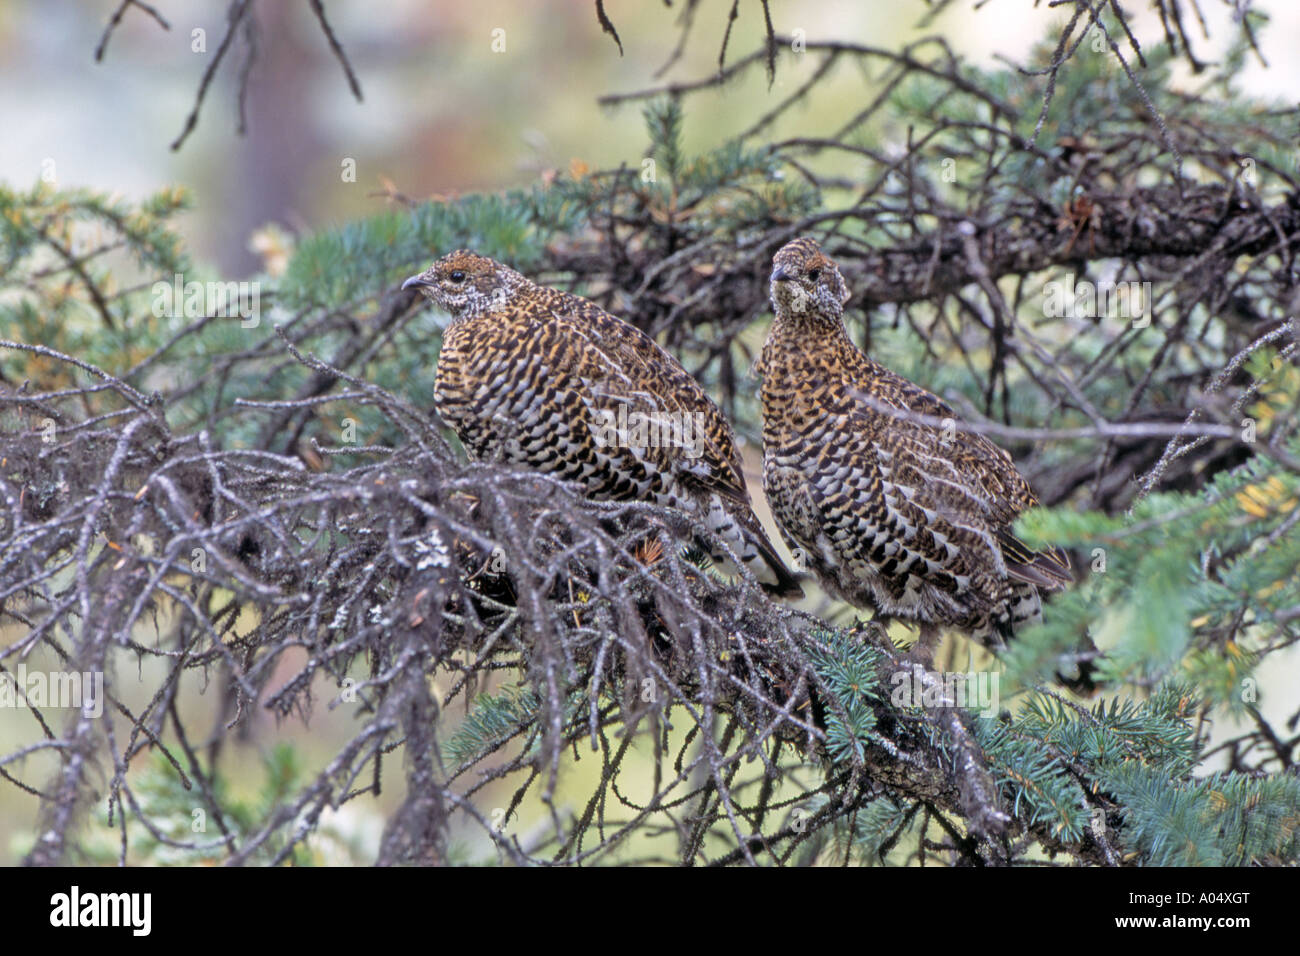 Spruce Grouse (Falcipennis canadensis) two females perched on branch of a coniferous tree - Stock Image